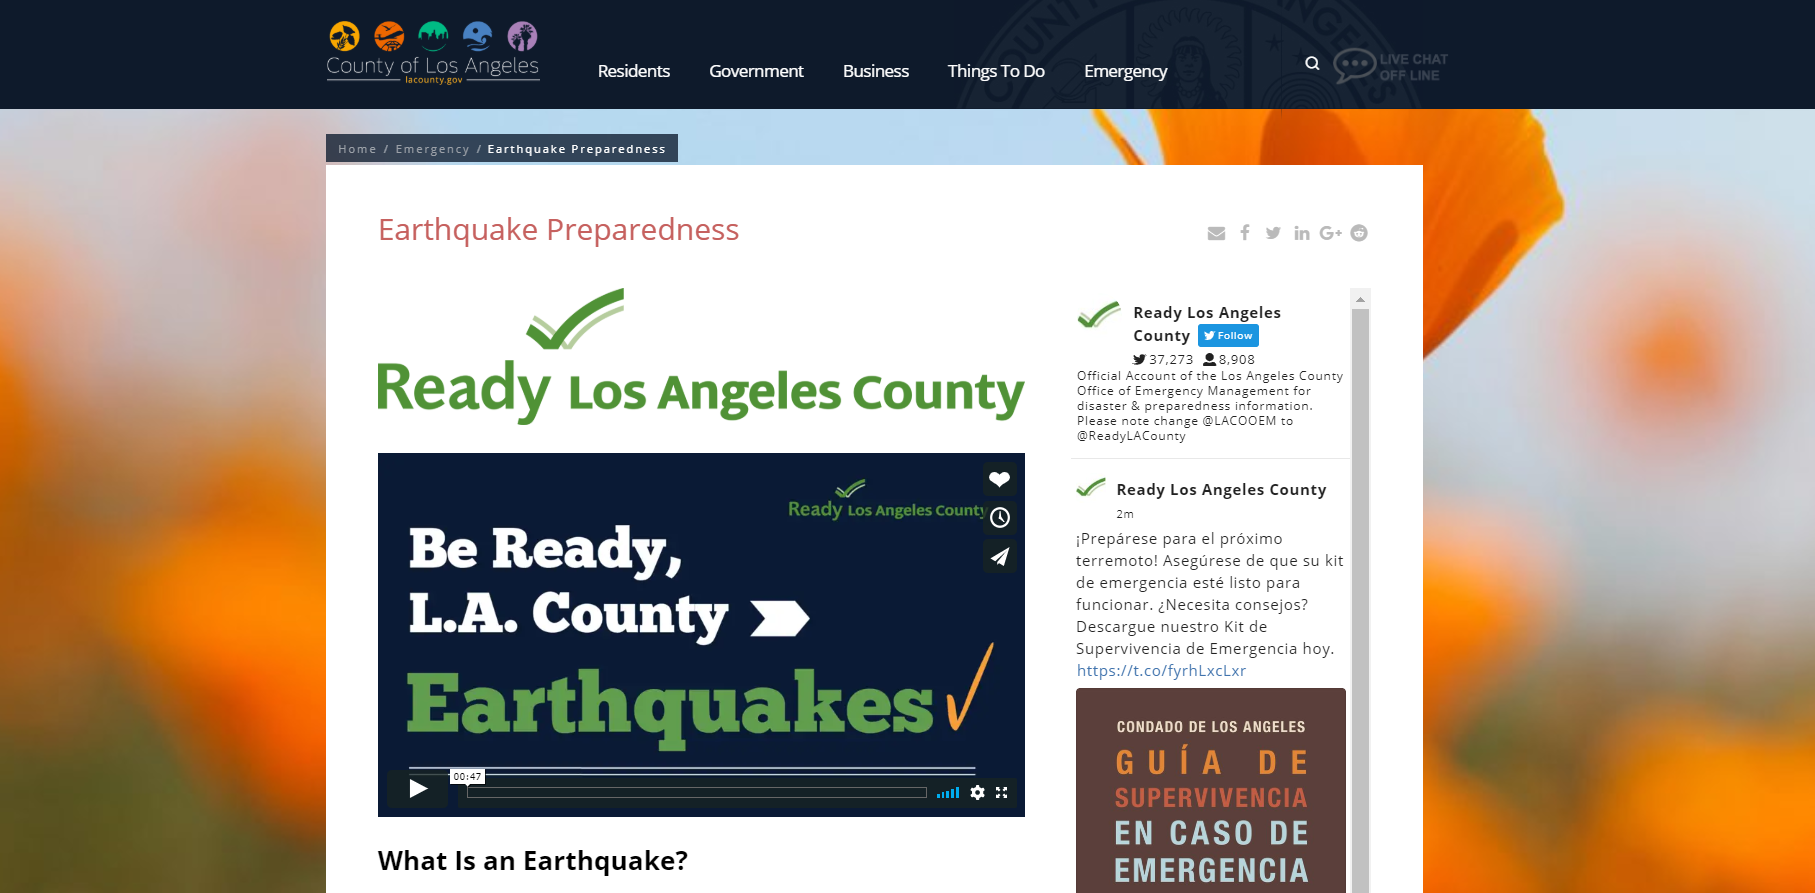 Earthquake Preparedness by L.A. County